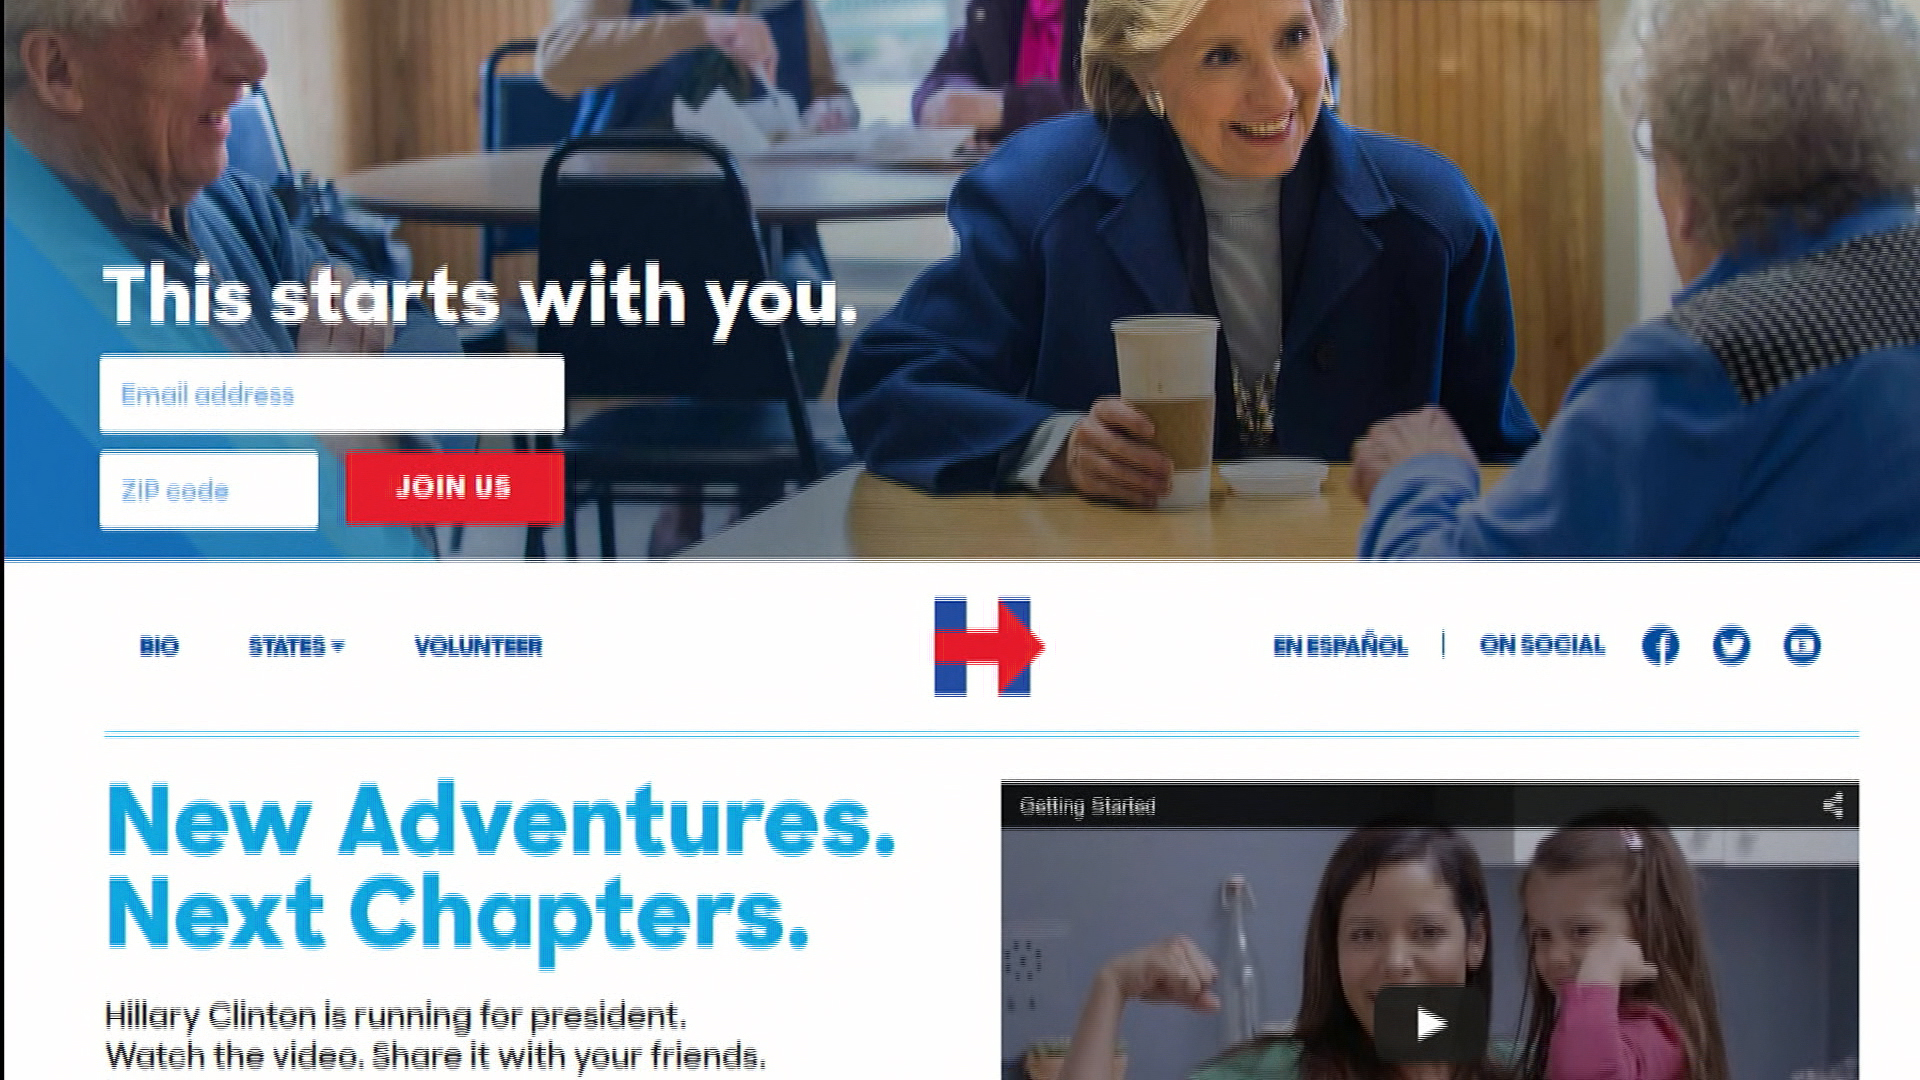 Clinton's campaign website makes a splash